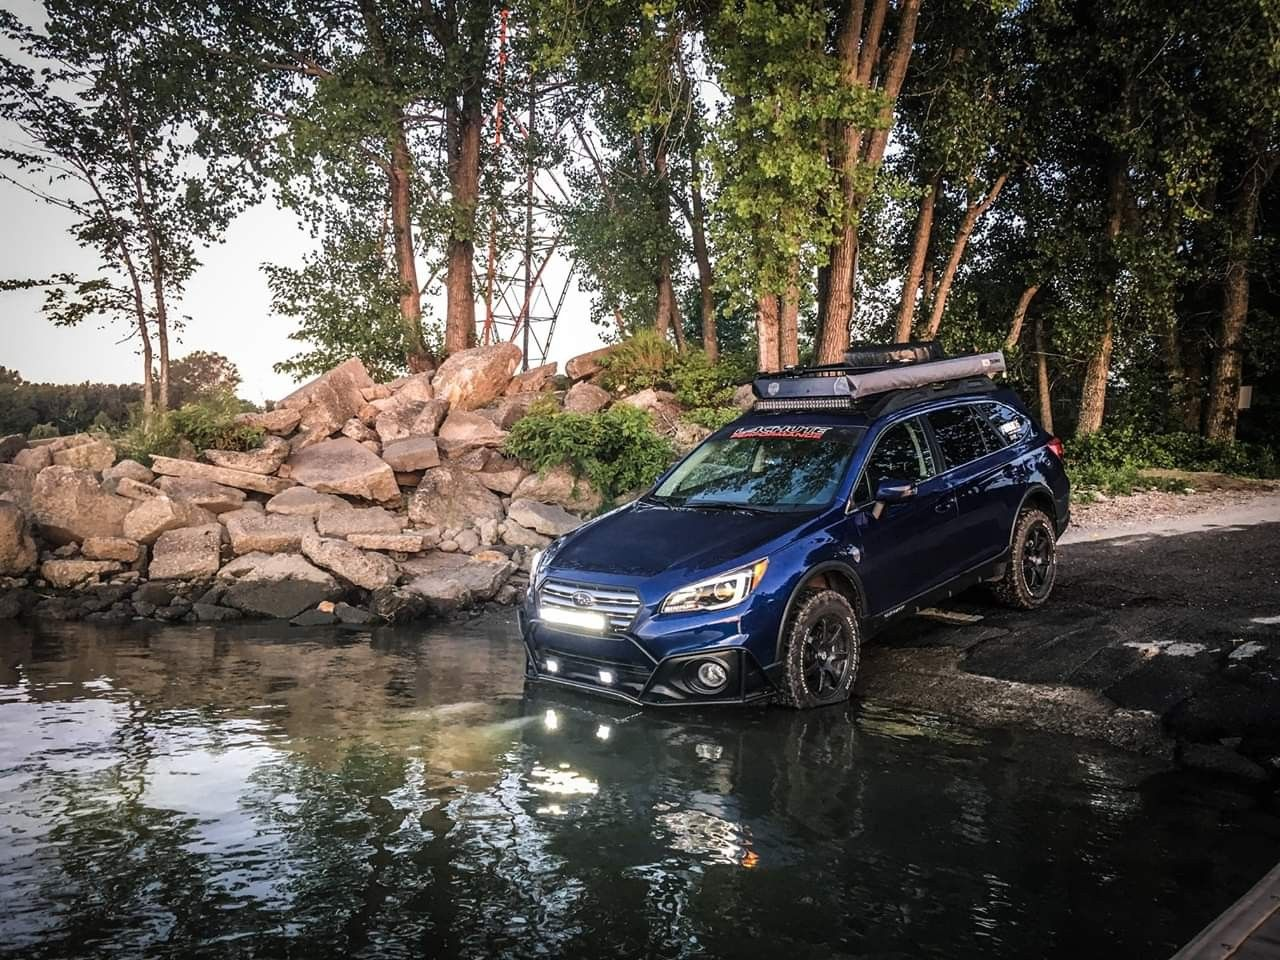 Pin By Brett Silzer On Crosstrek Subaru Outback Offroad Subaru